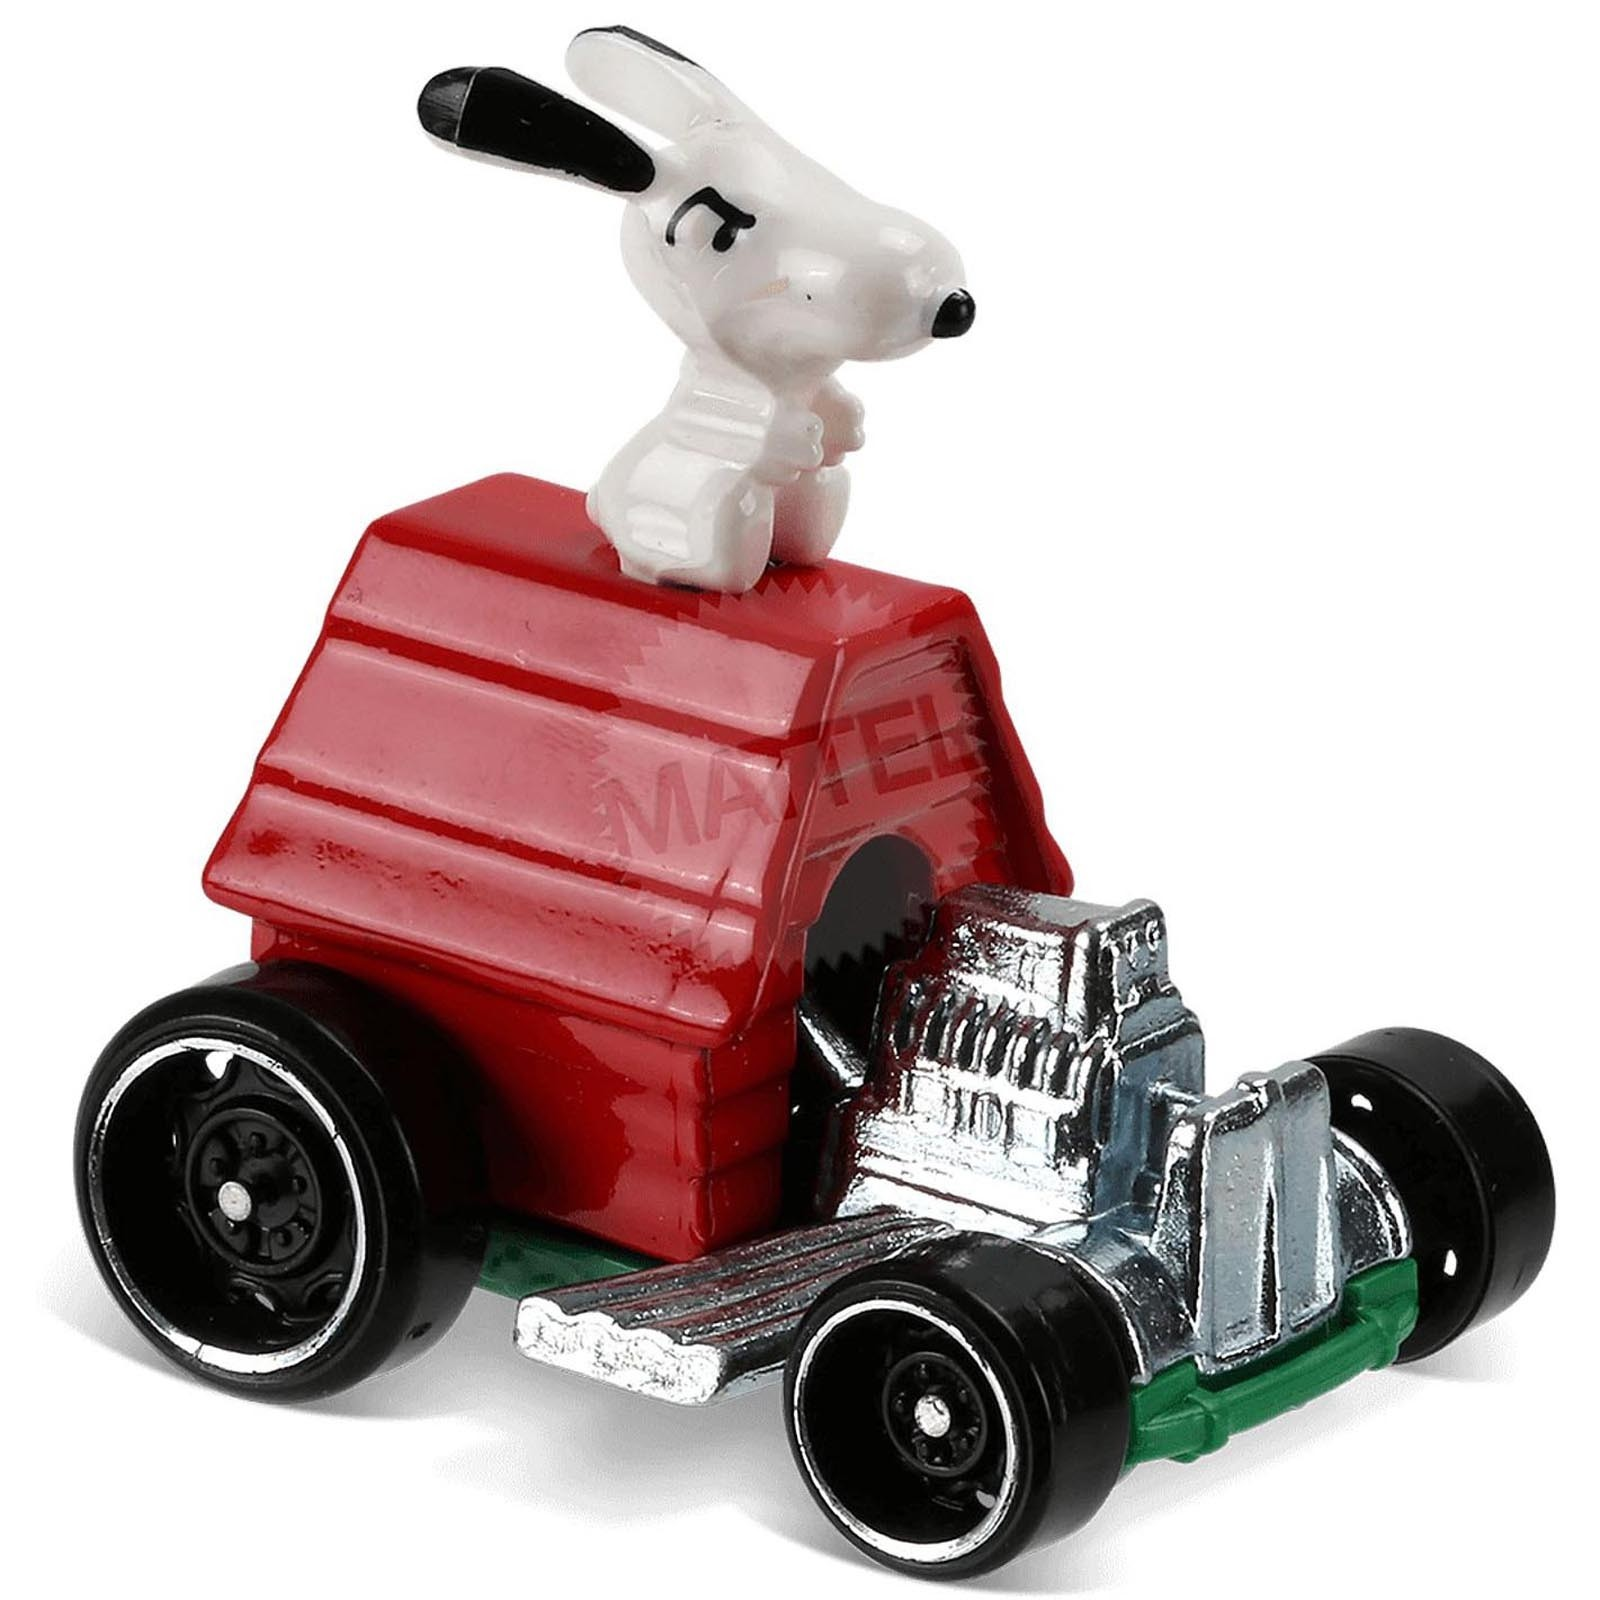 Hot Wheels - Snoopy - FJW37